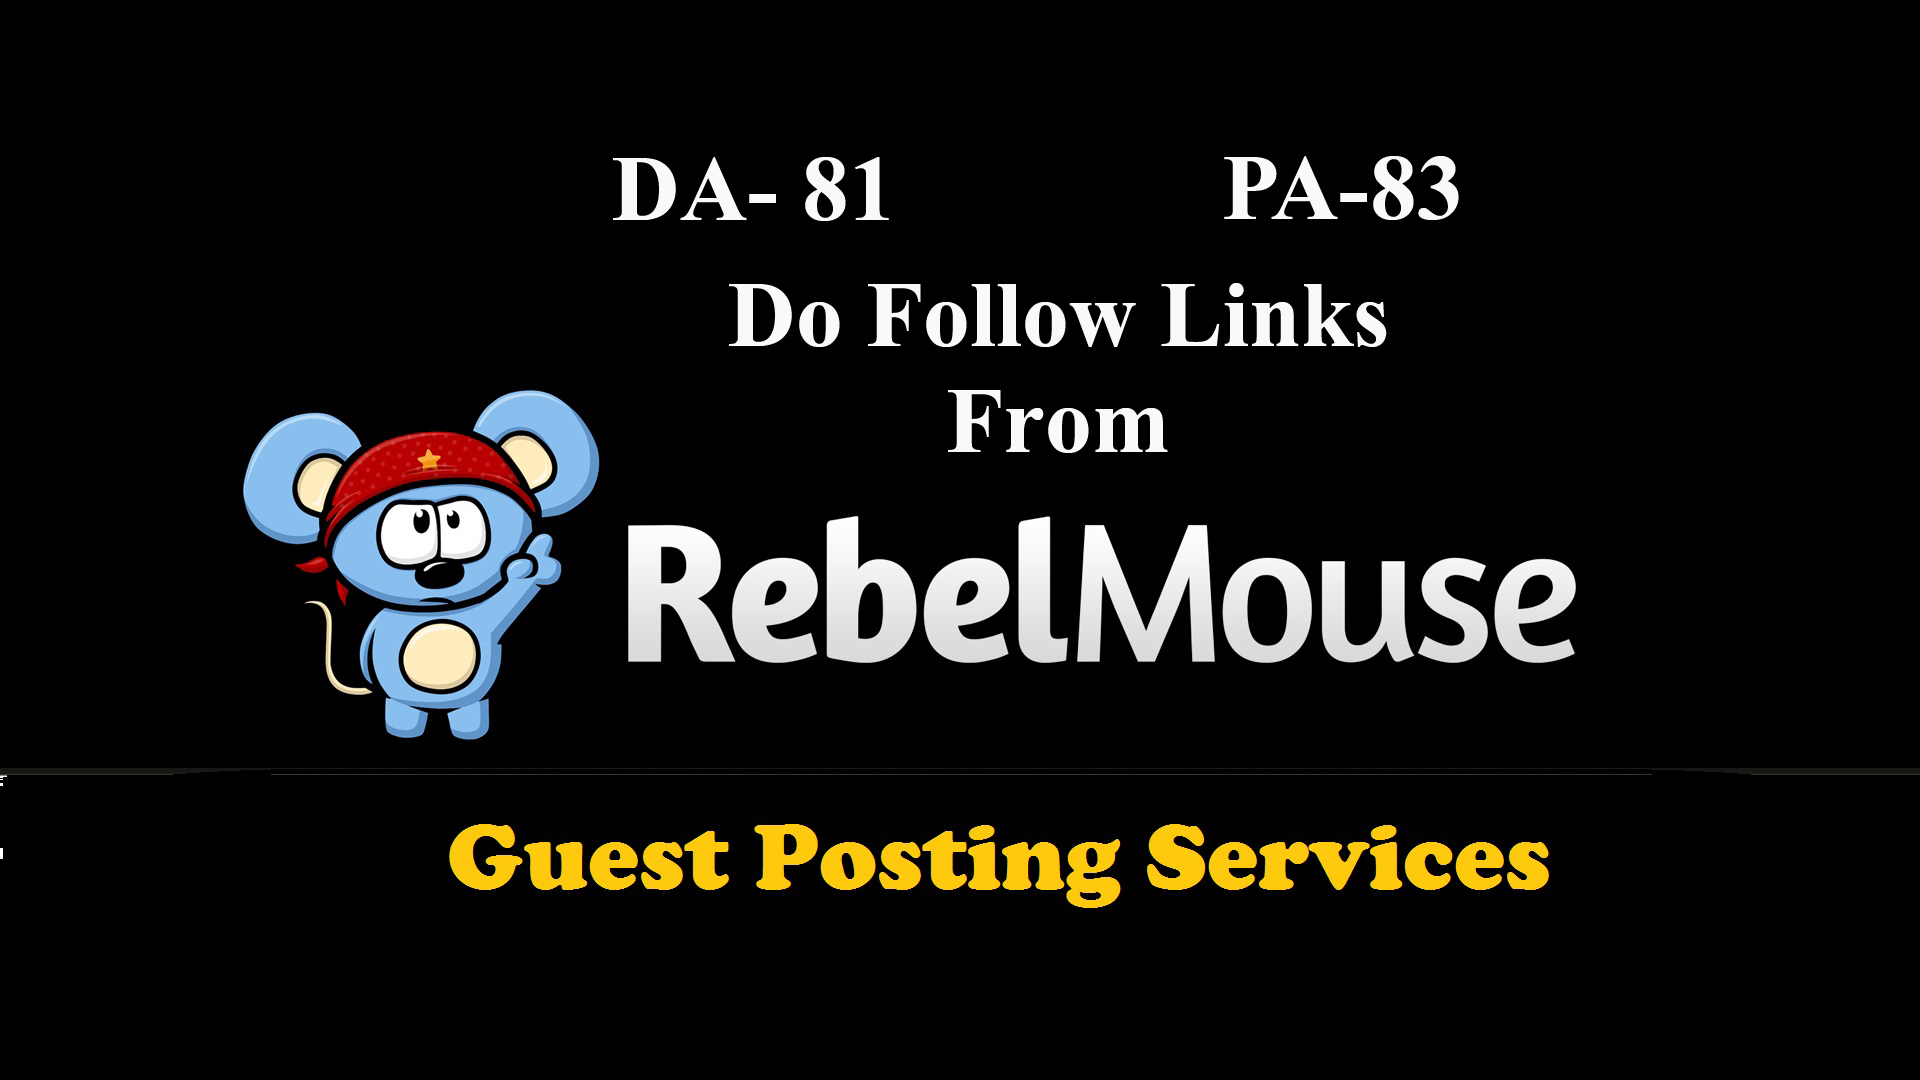 provide you Guest Post on RebelMouse with DA 81